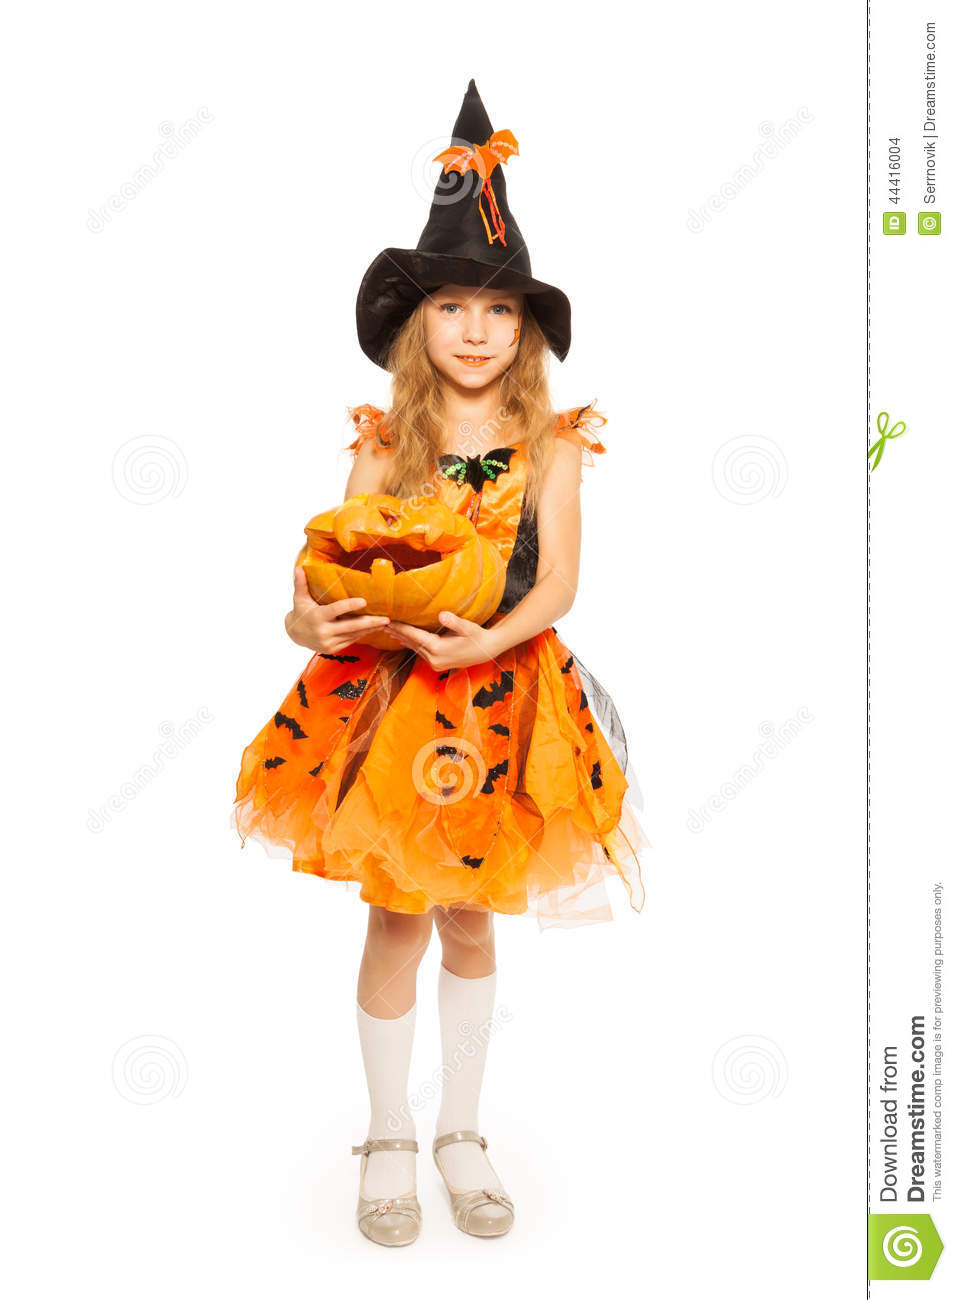 girl in witch dress hold carved halloween pumpkin stock halloween costume clipart black and white halloween costumes clip art pages